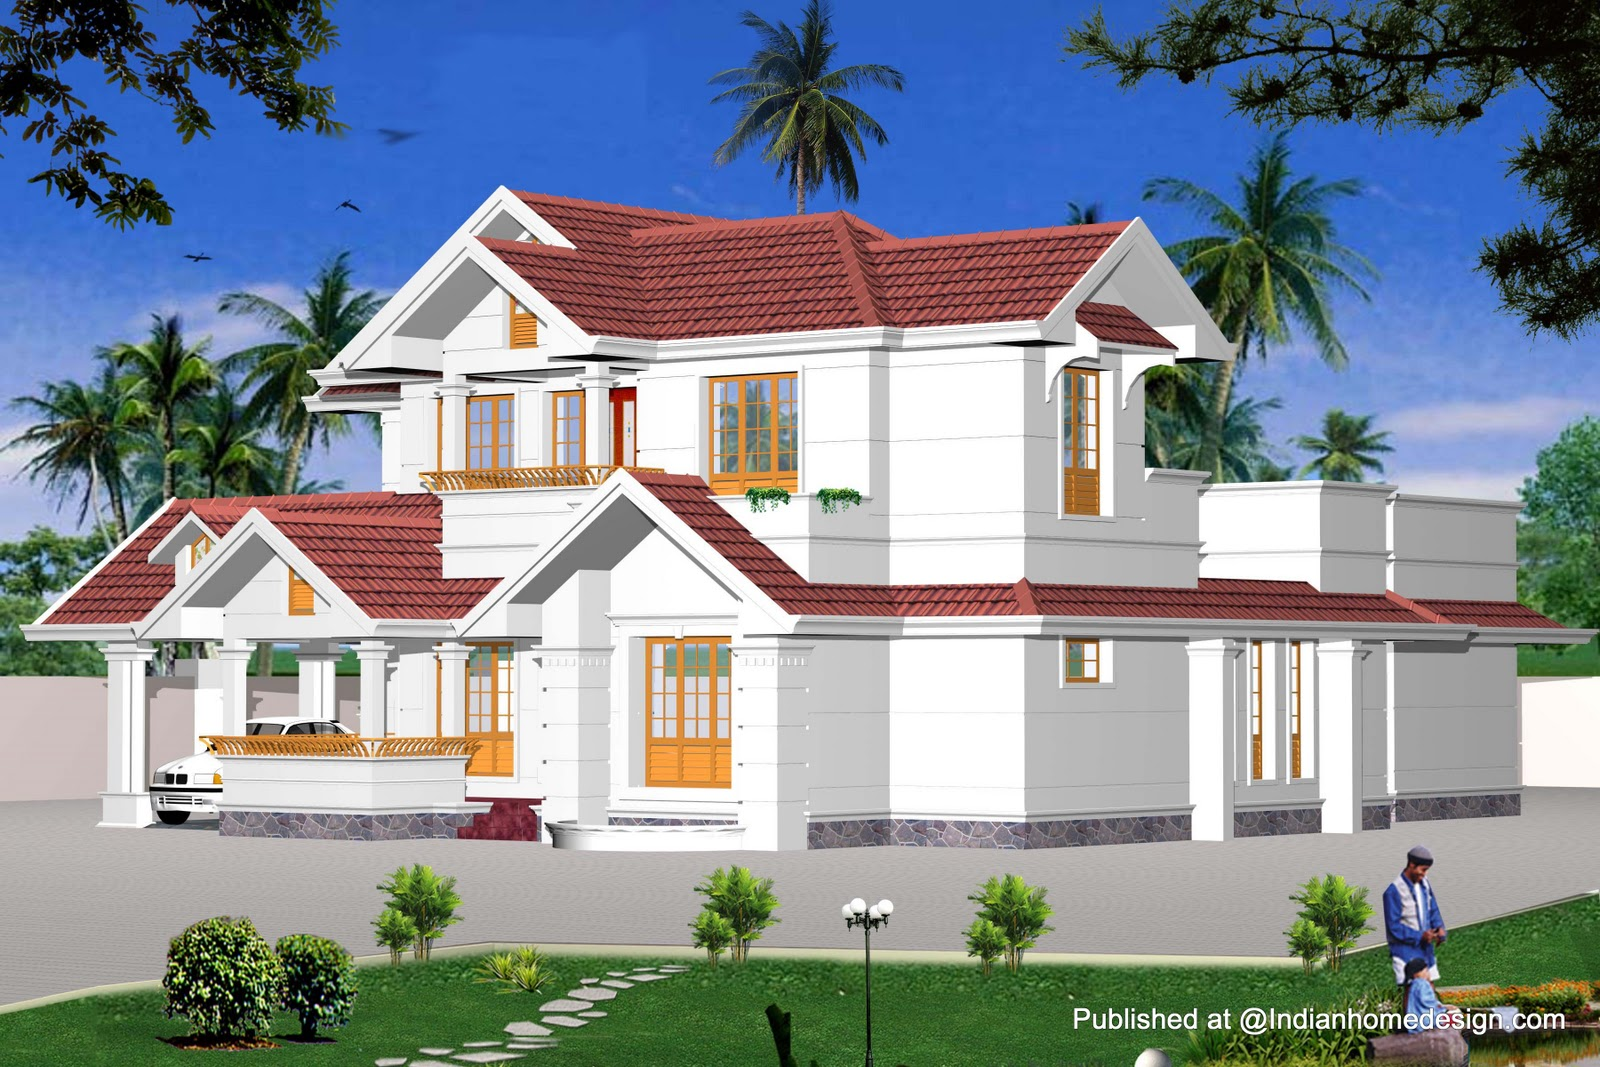 S b property deal abohar for South indian model house plan